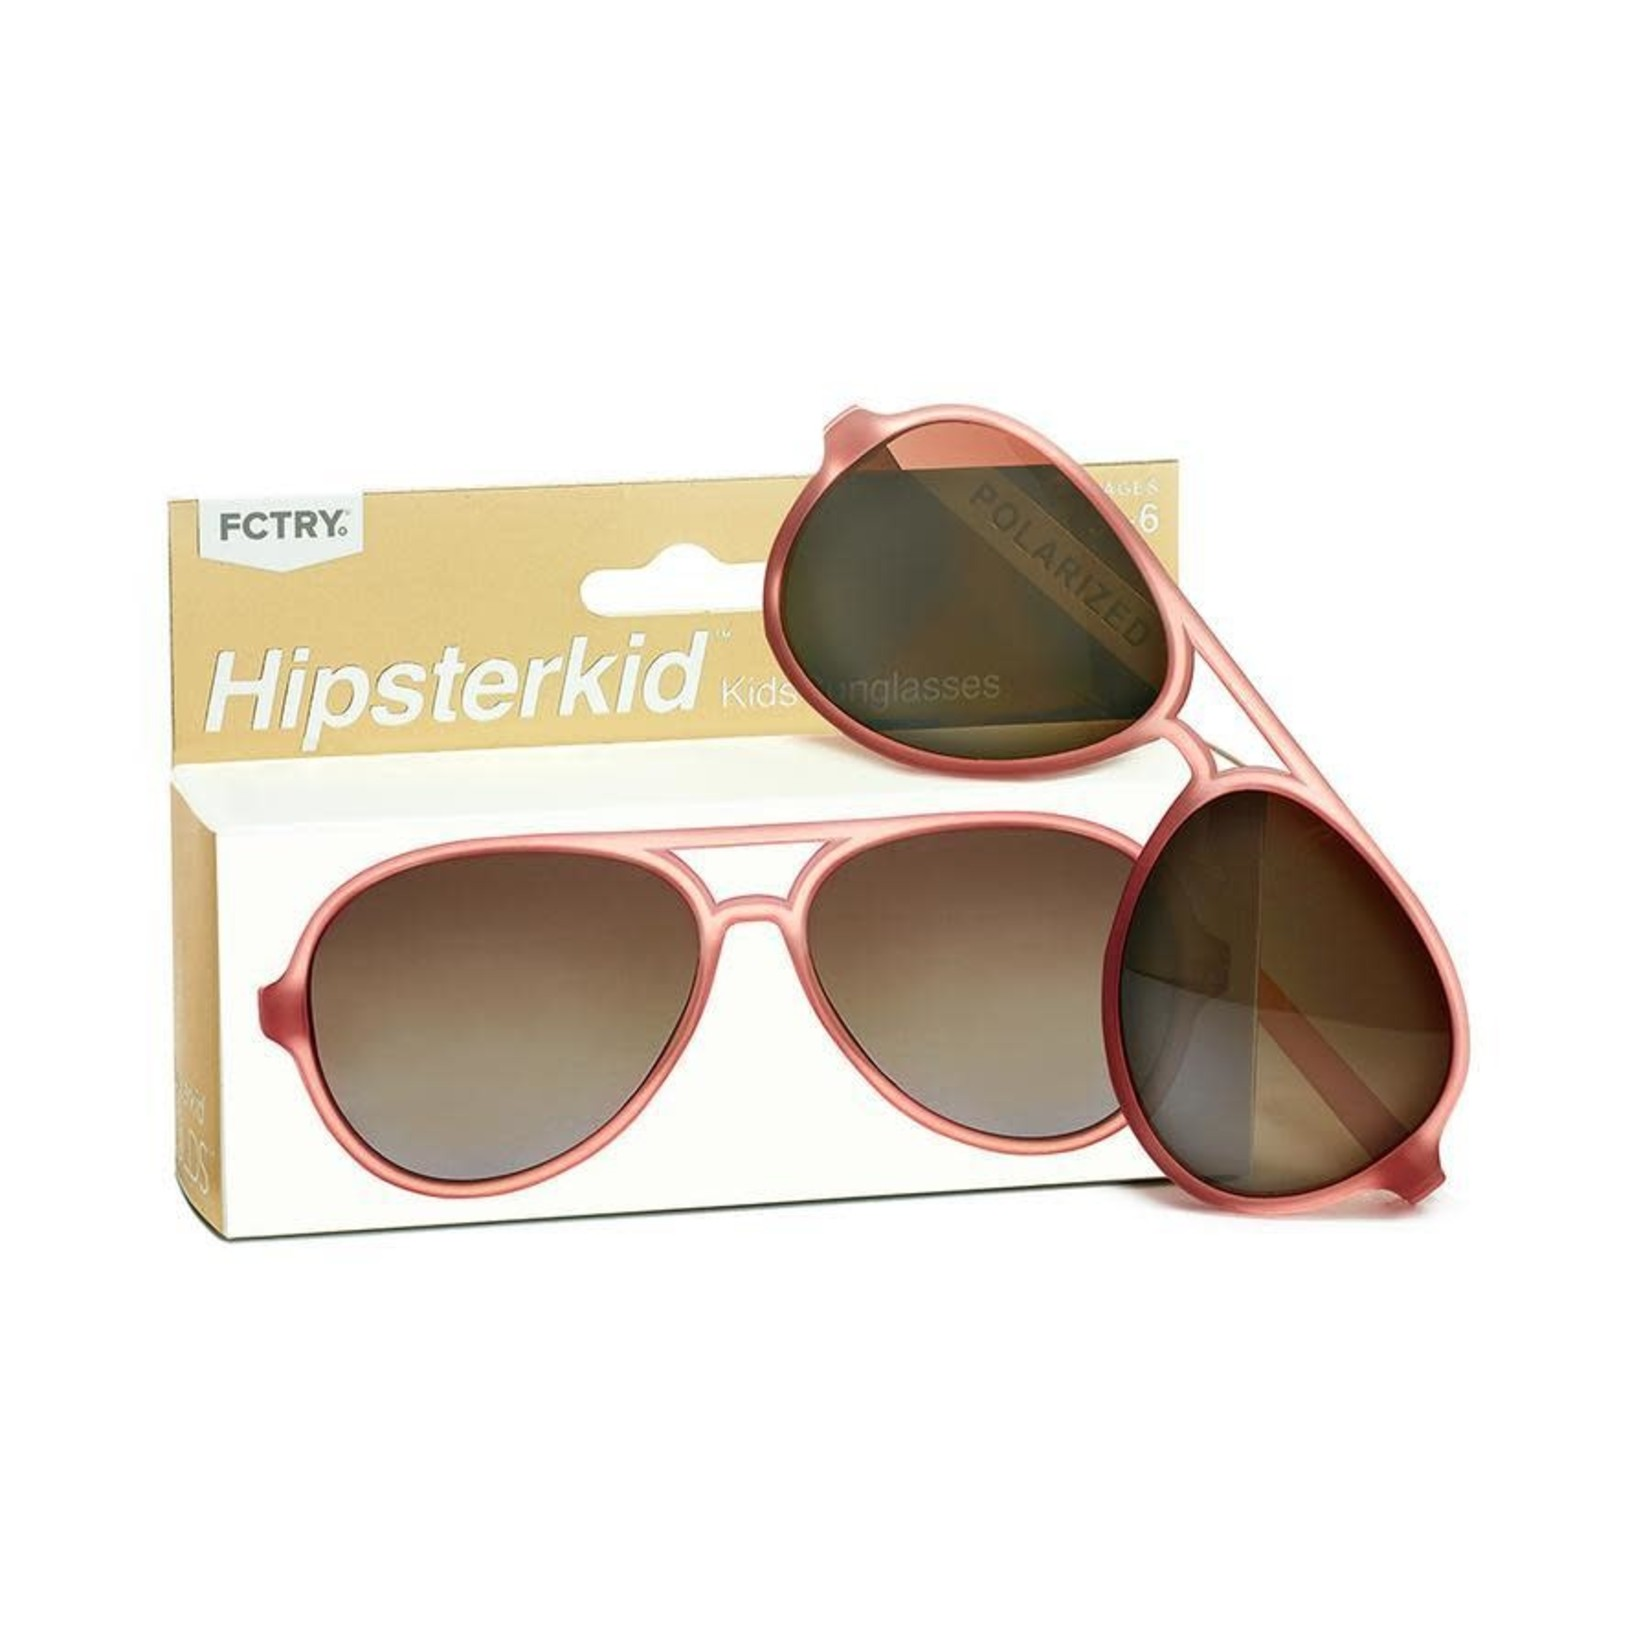 FCTRY Hipsterkid Golds Aviator Baby Sunglasses, Rose (0-2y)